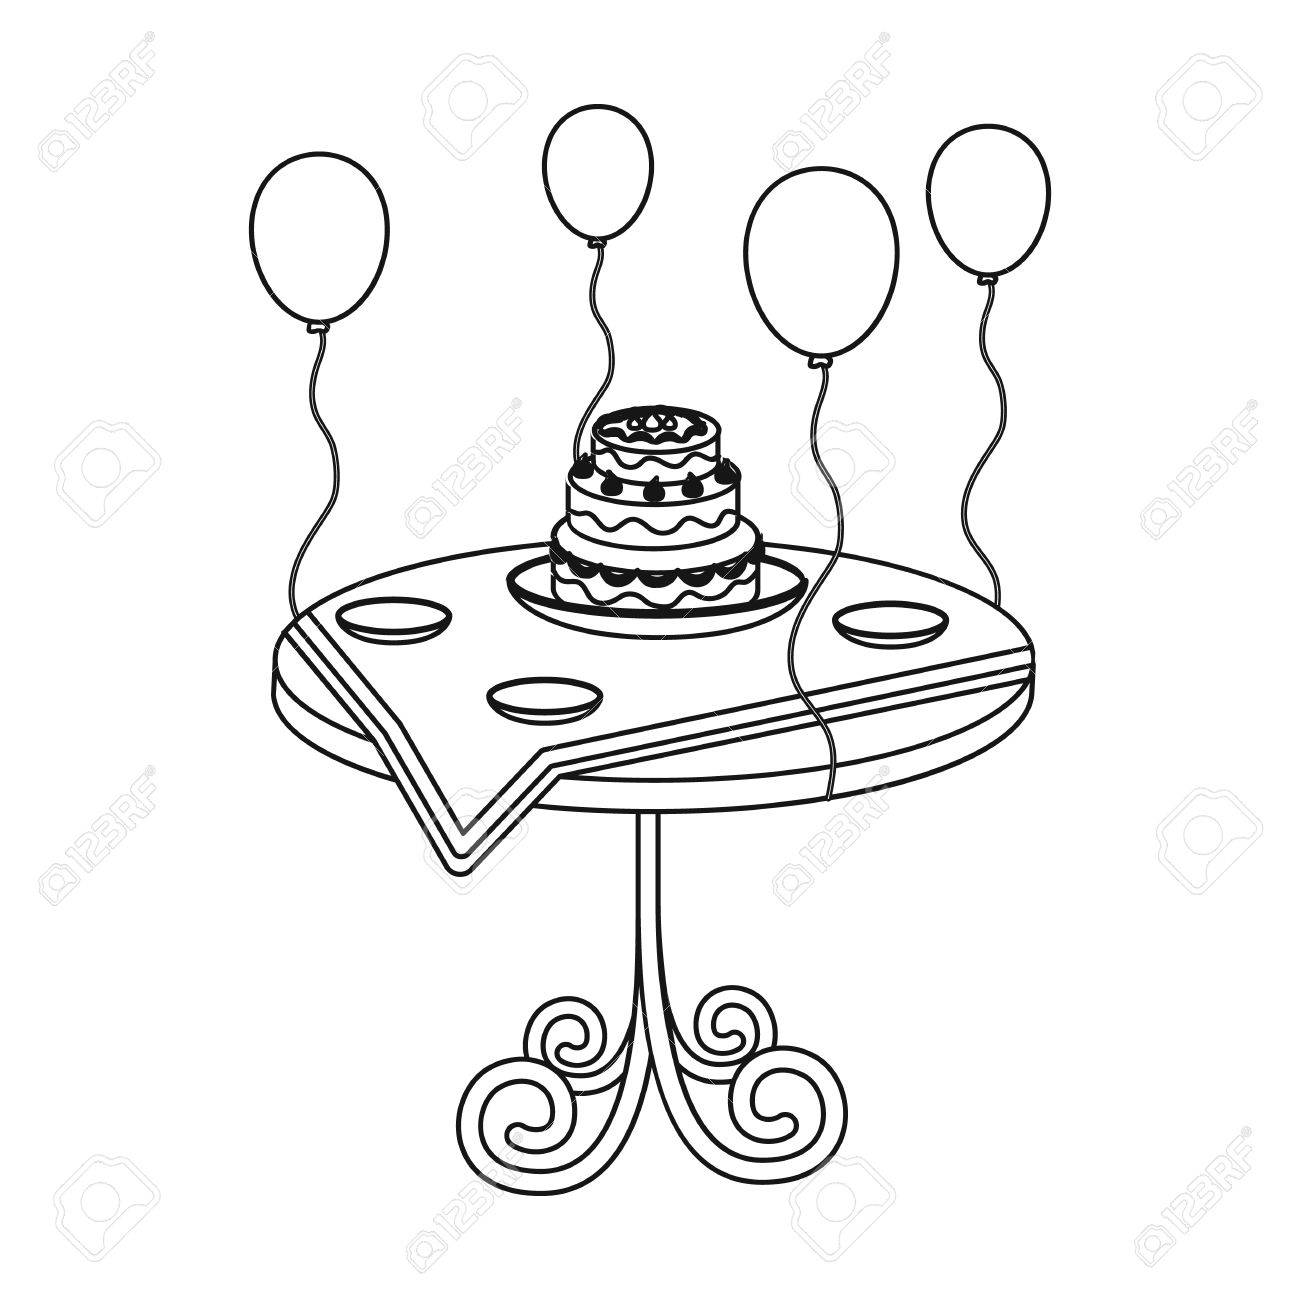 Birthday Cake On The Table Icon In Outline Style Isolated On